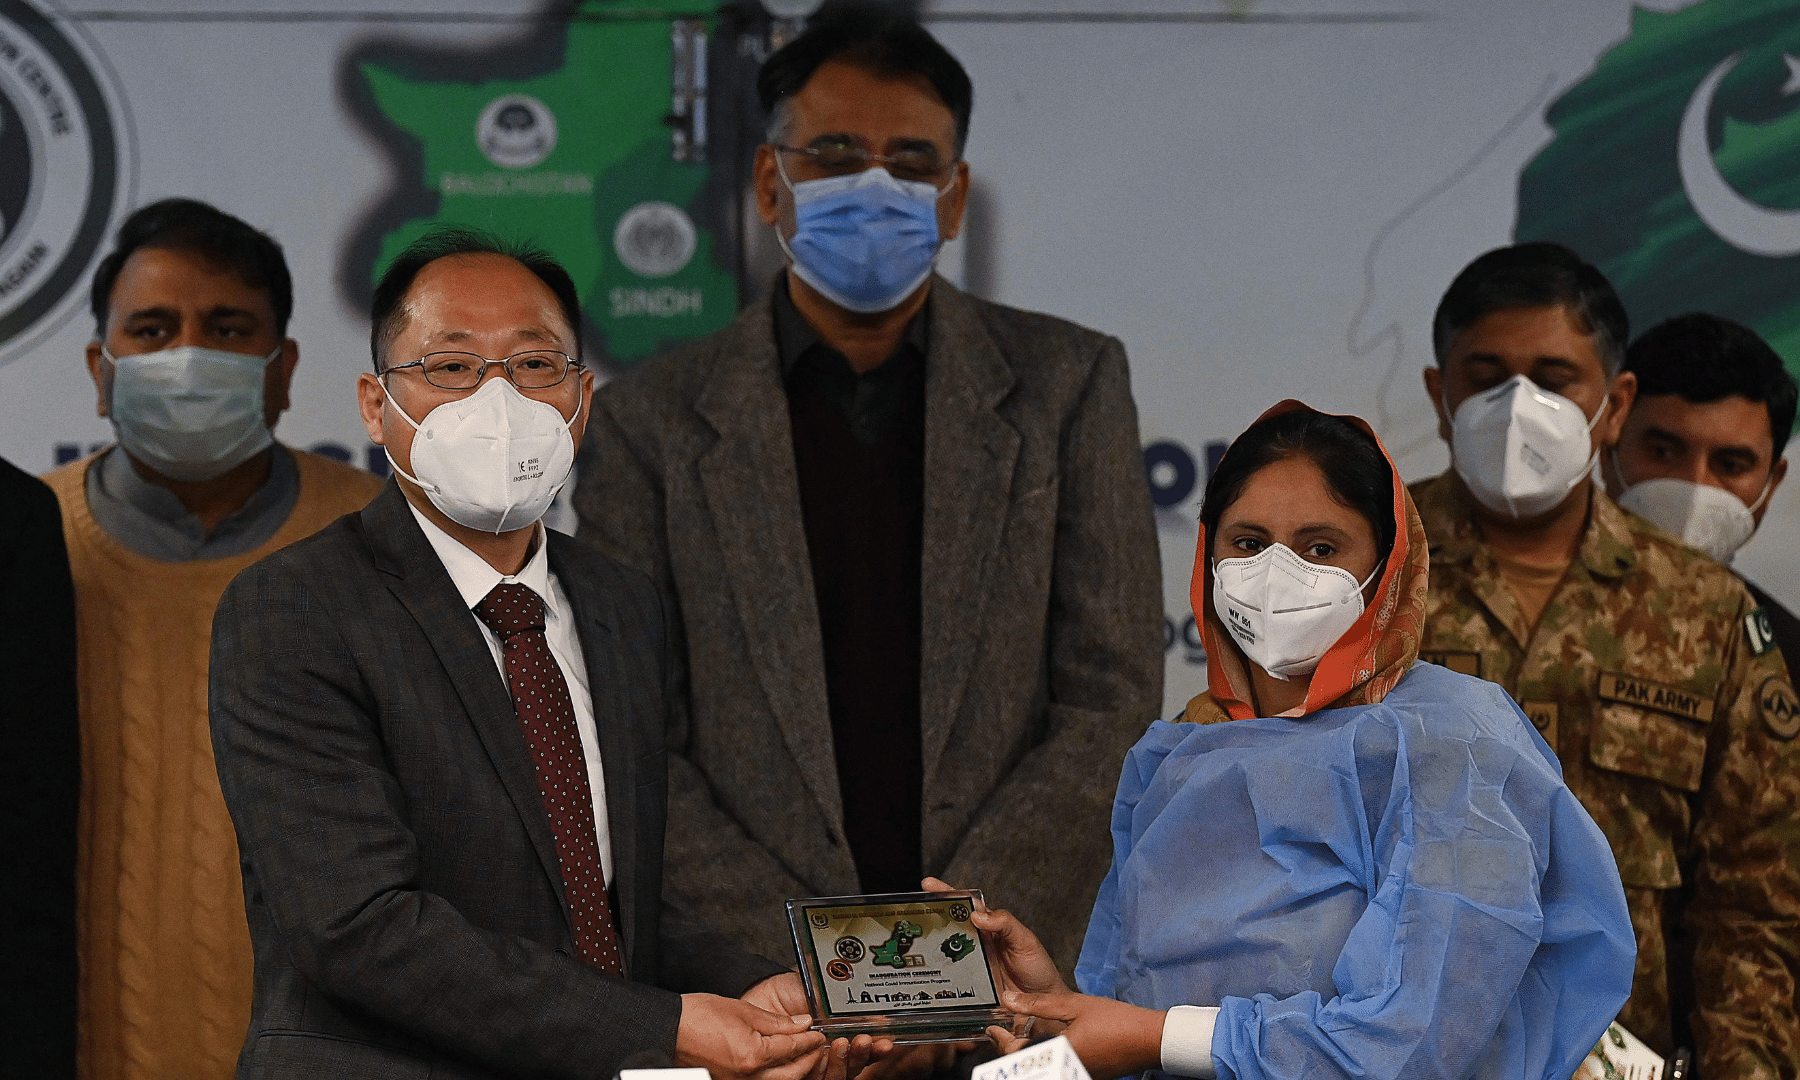 Chief guest, Commercial Minister Counsellor China Xie Guoxiang (L) gives a souvenir to a health worker after she received a dose of the Chinese-made Sinopharm Covid-19 vaccine, as the head of National Command and Operation Centre Asad Umar (C) looks on, in Islamabad on Wednesday. — AFP